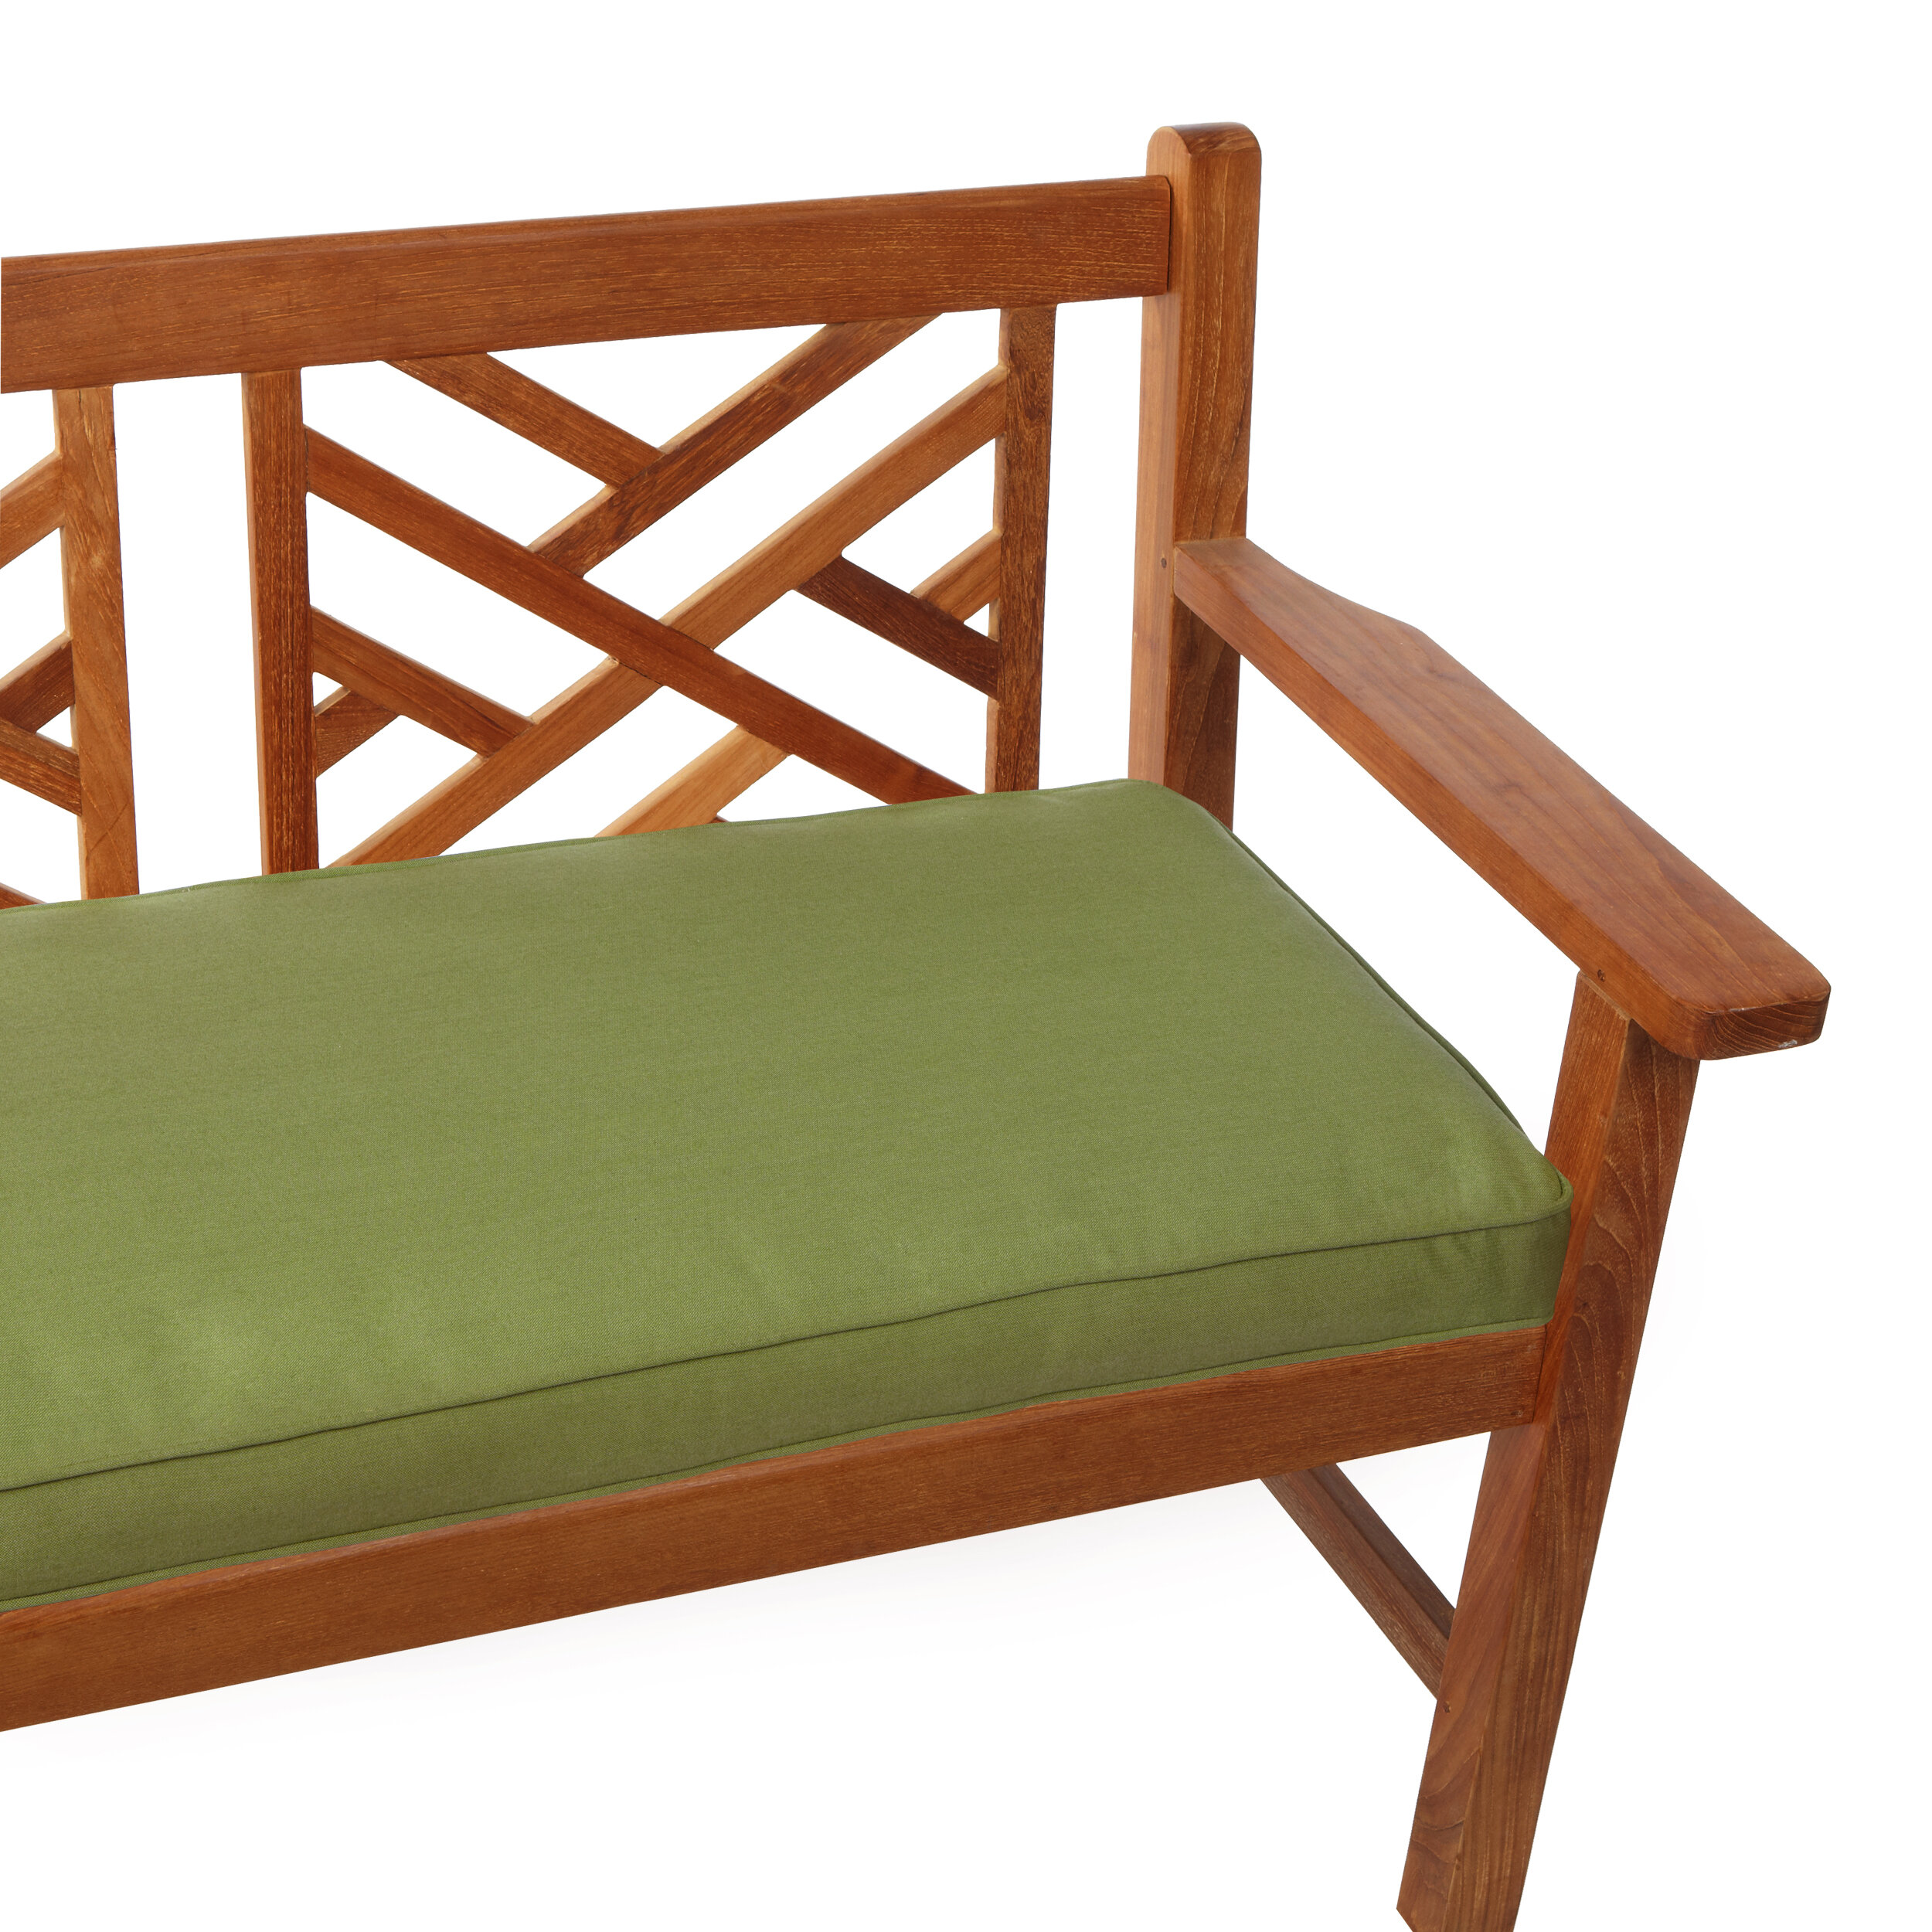 repl double swing cushion for bench cushioned inch replacement xx outdoor